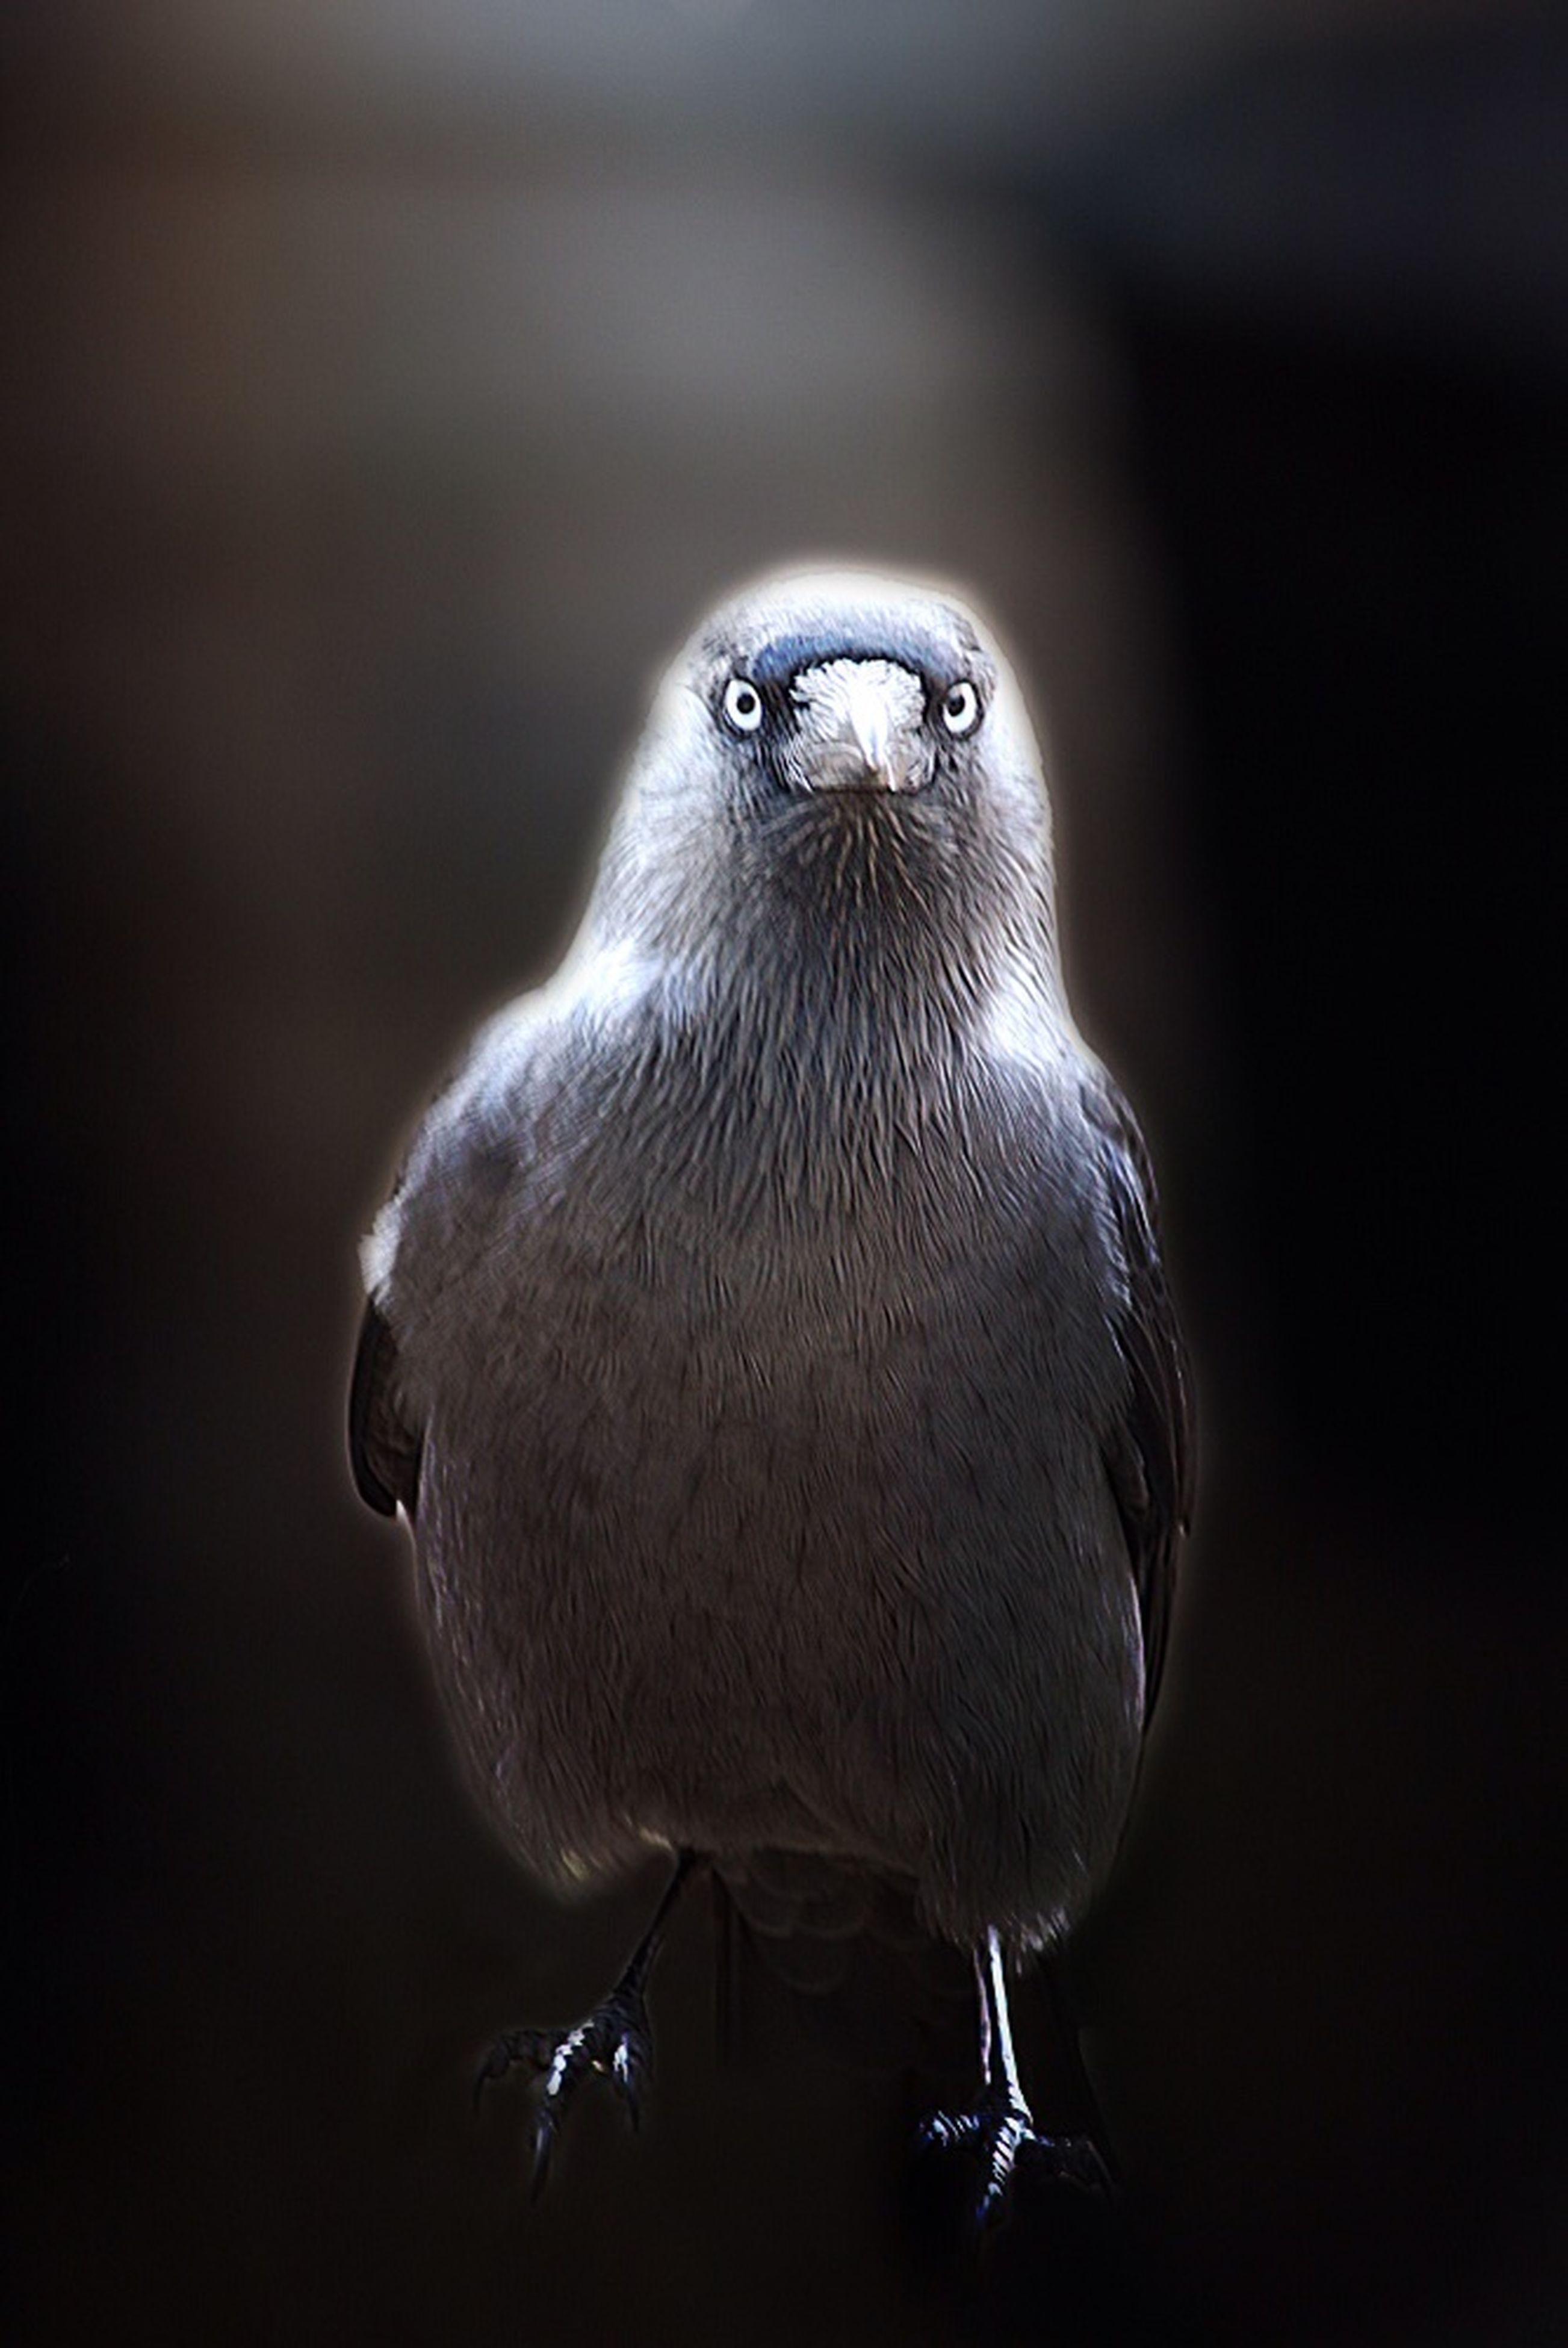 bird, one animal, animal themes, animals in the wild, animal wildlife, close-up, no people, perching, day, outdoors, nature